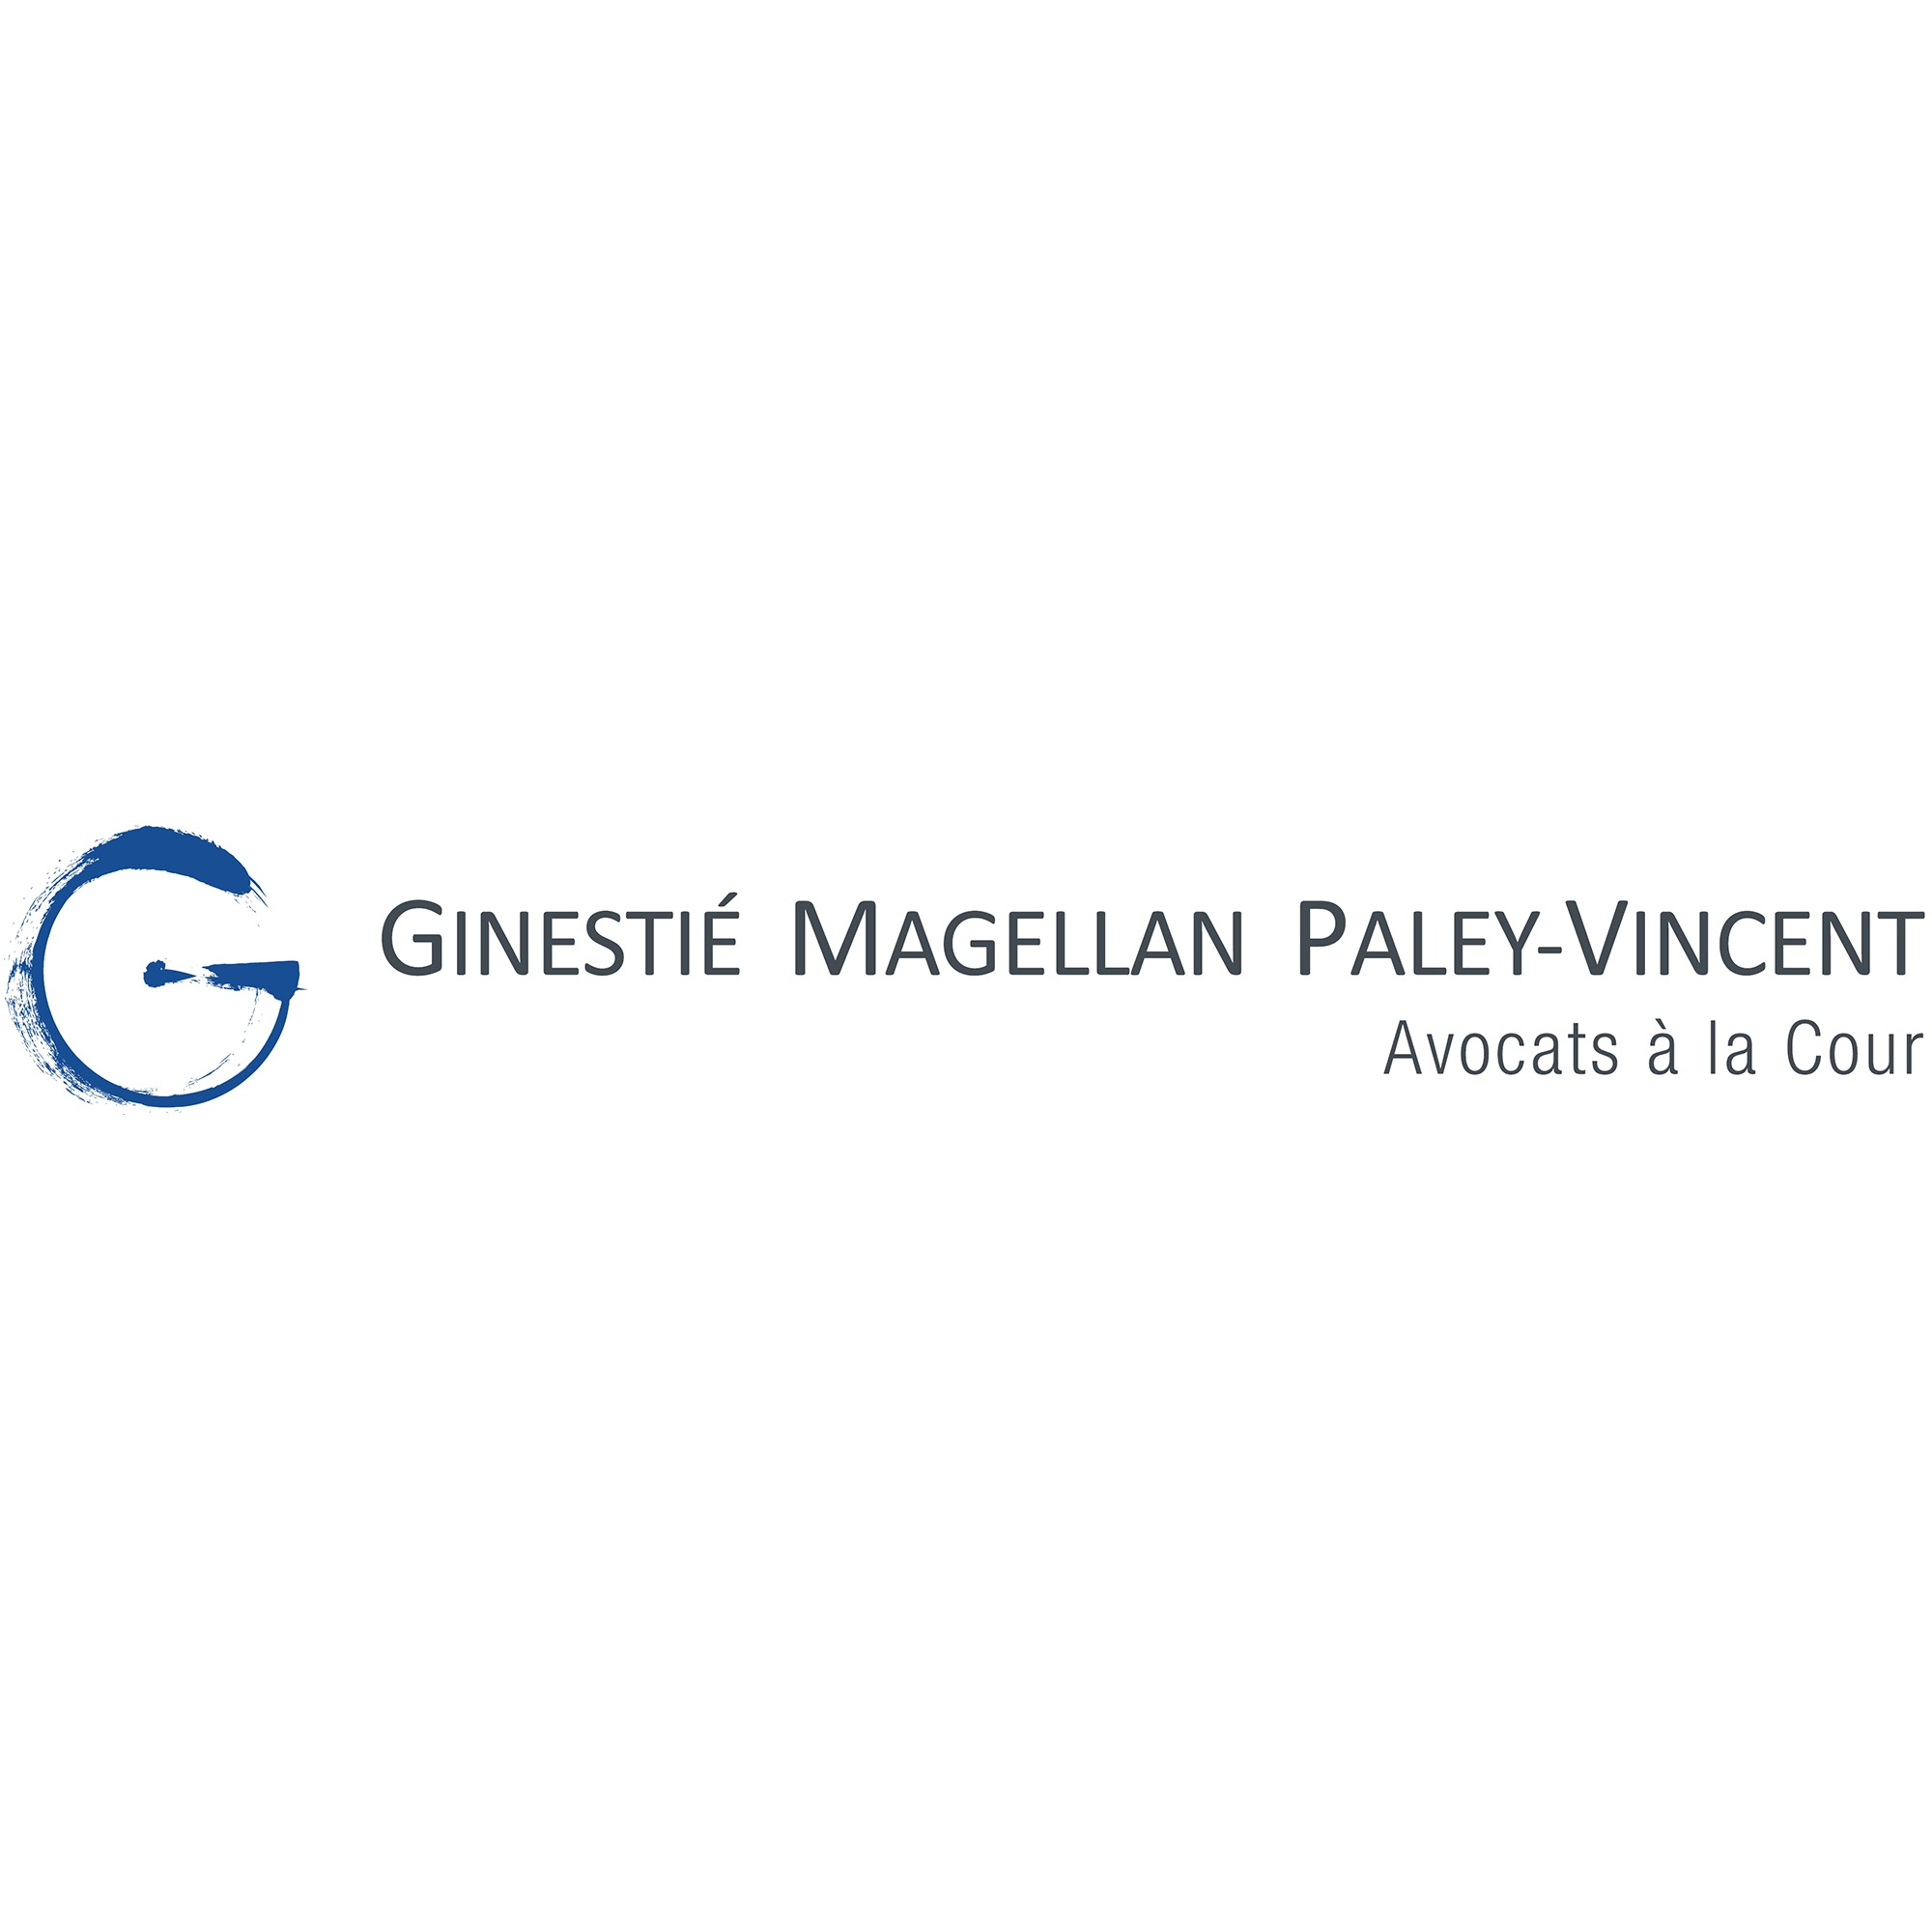 the Ginestié Magellan Paley-Vincent logo.